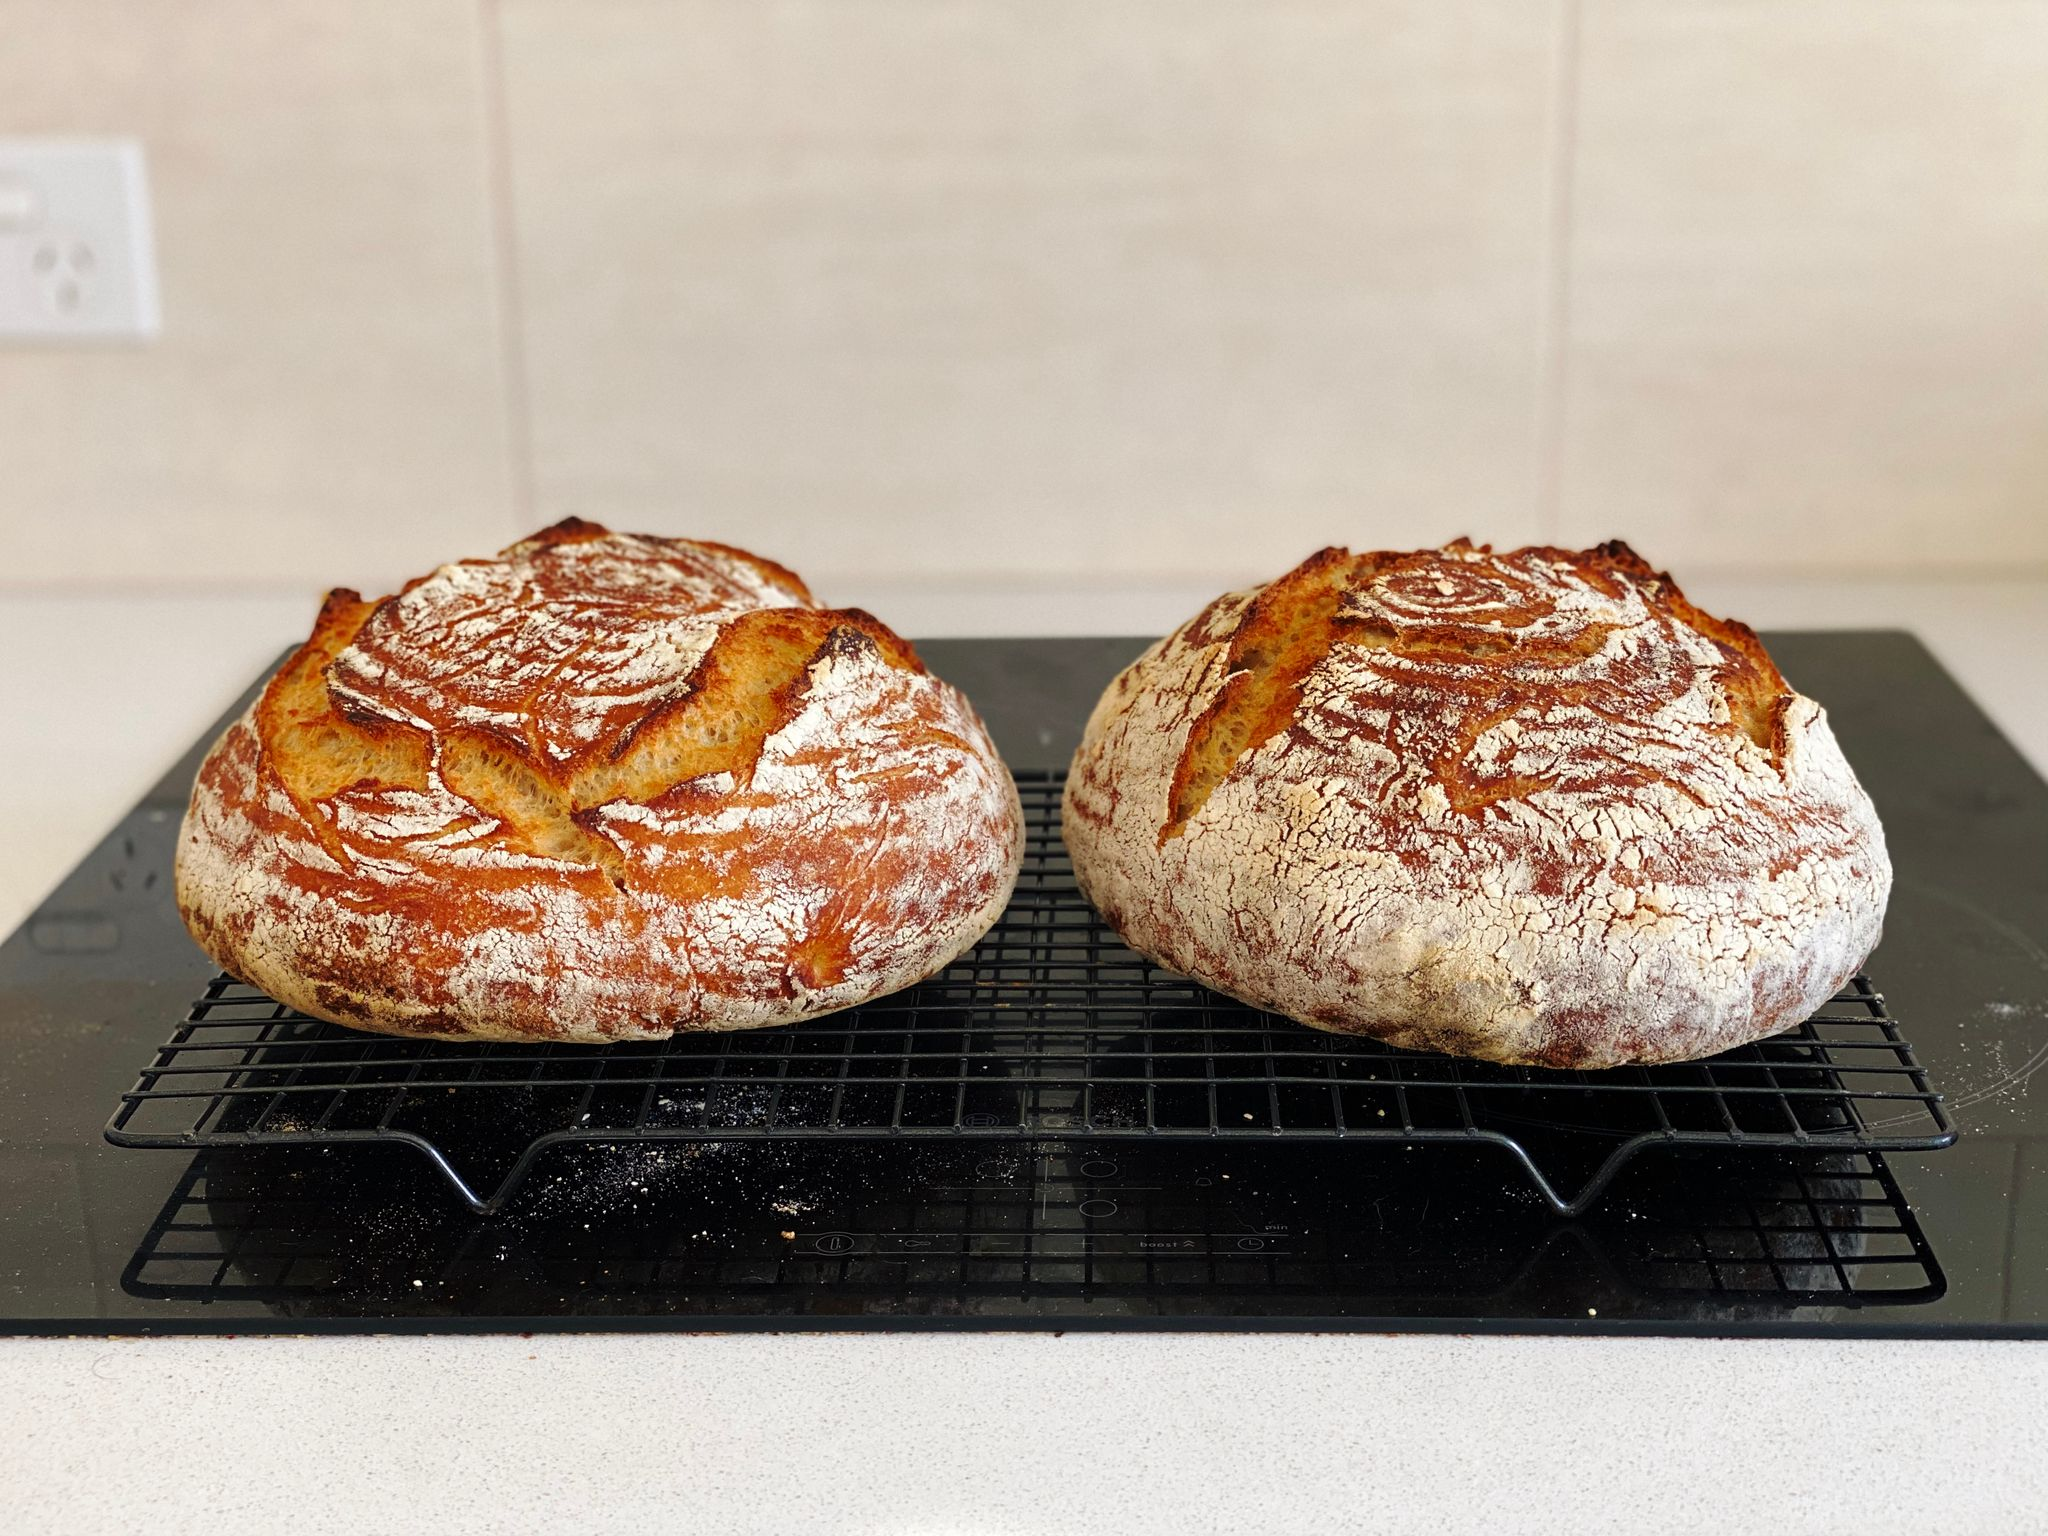 A photo of two round golden brown loaves of bread covered in flour sitting on a cooling rack.